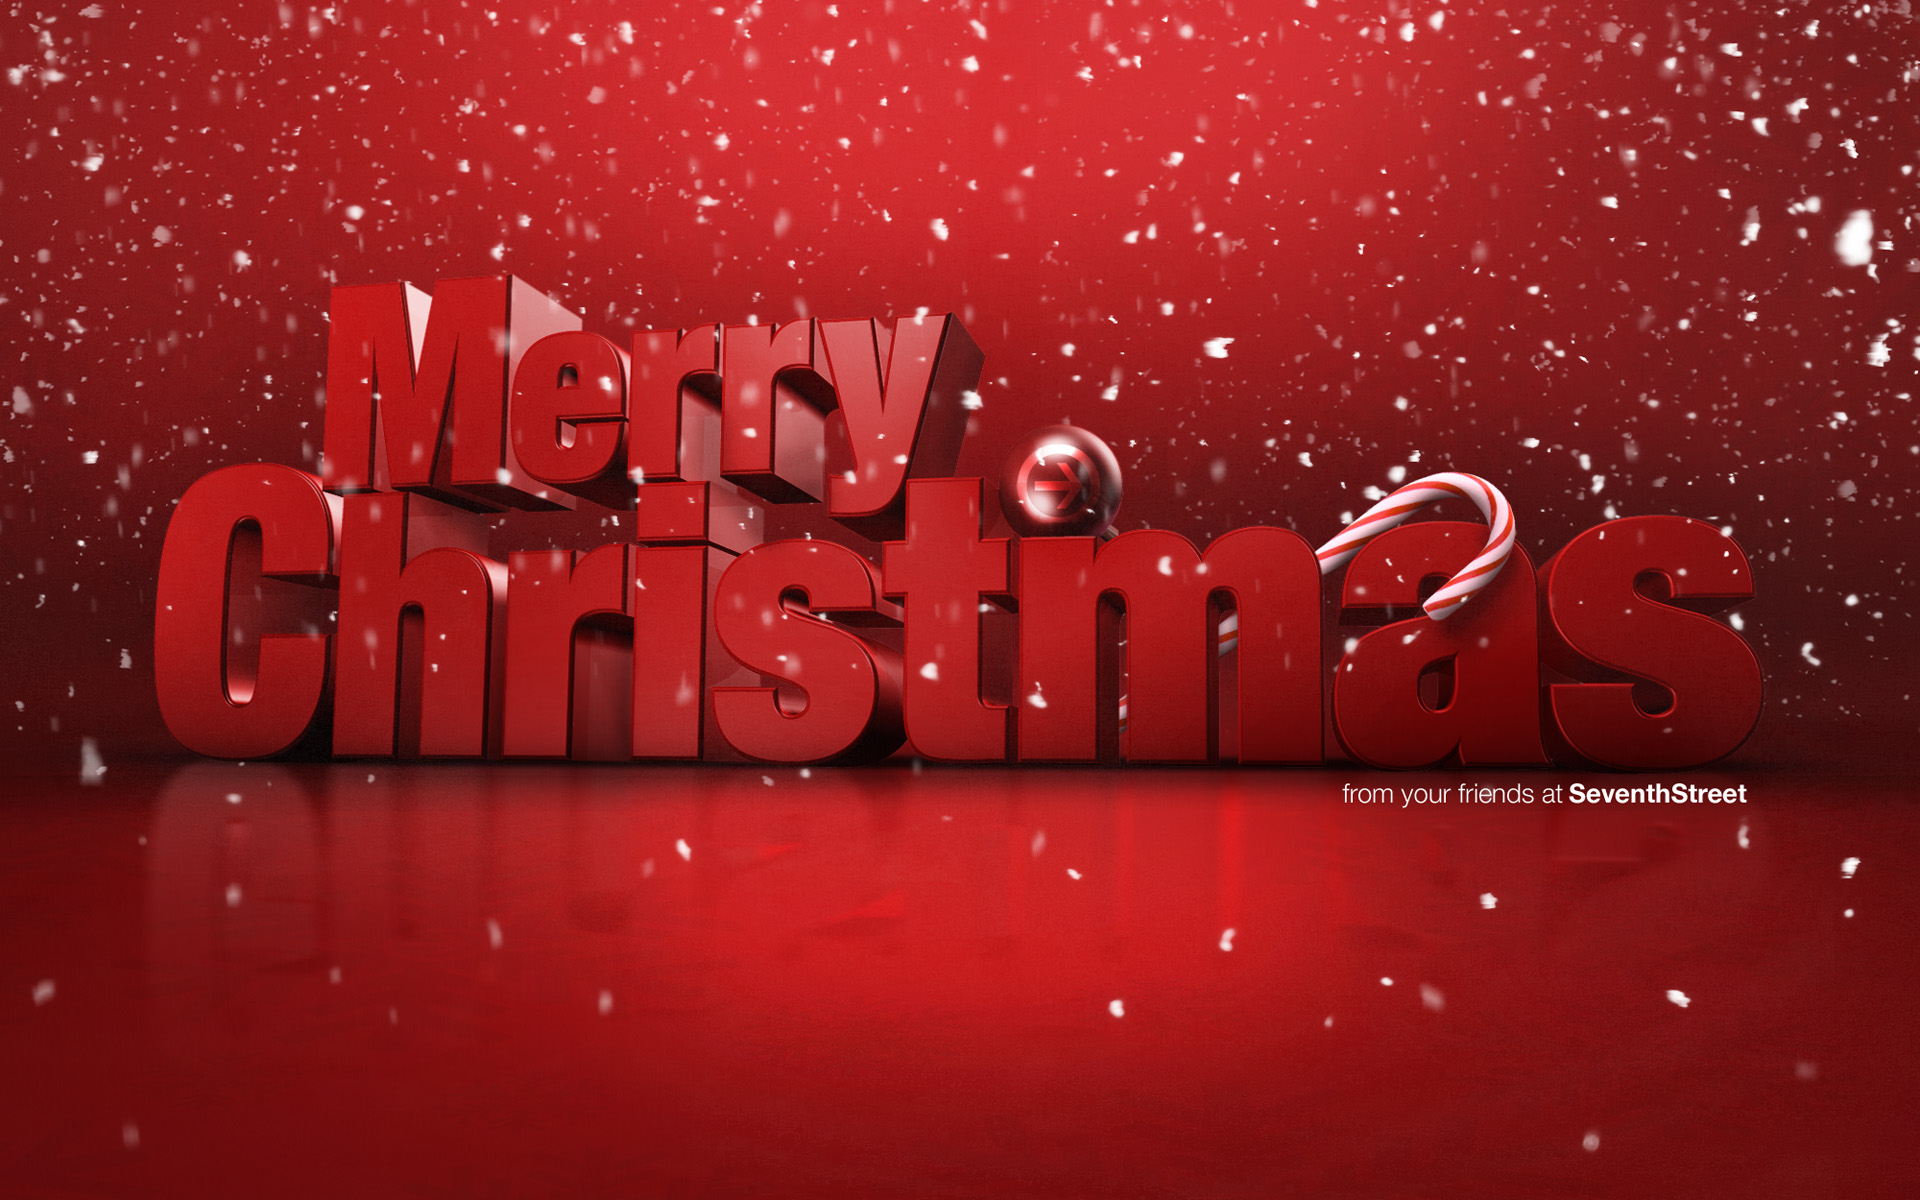 Wallpaper Christmas Religious Free Android Tutorial Xpx